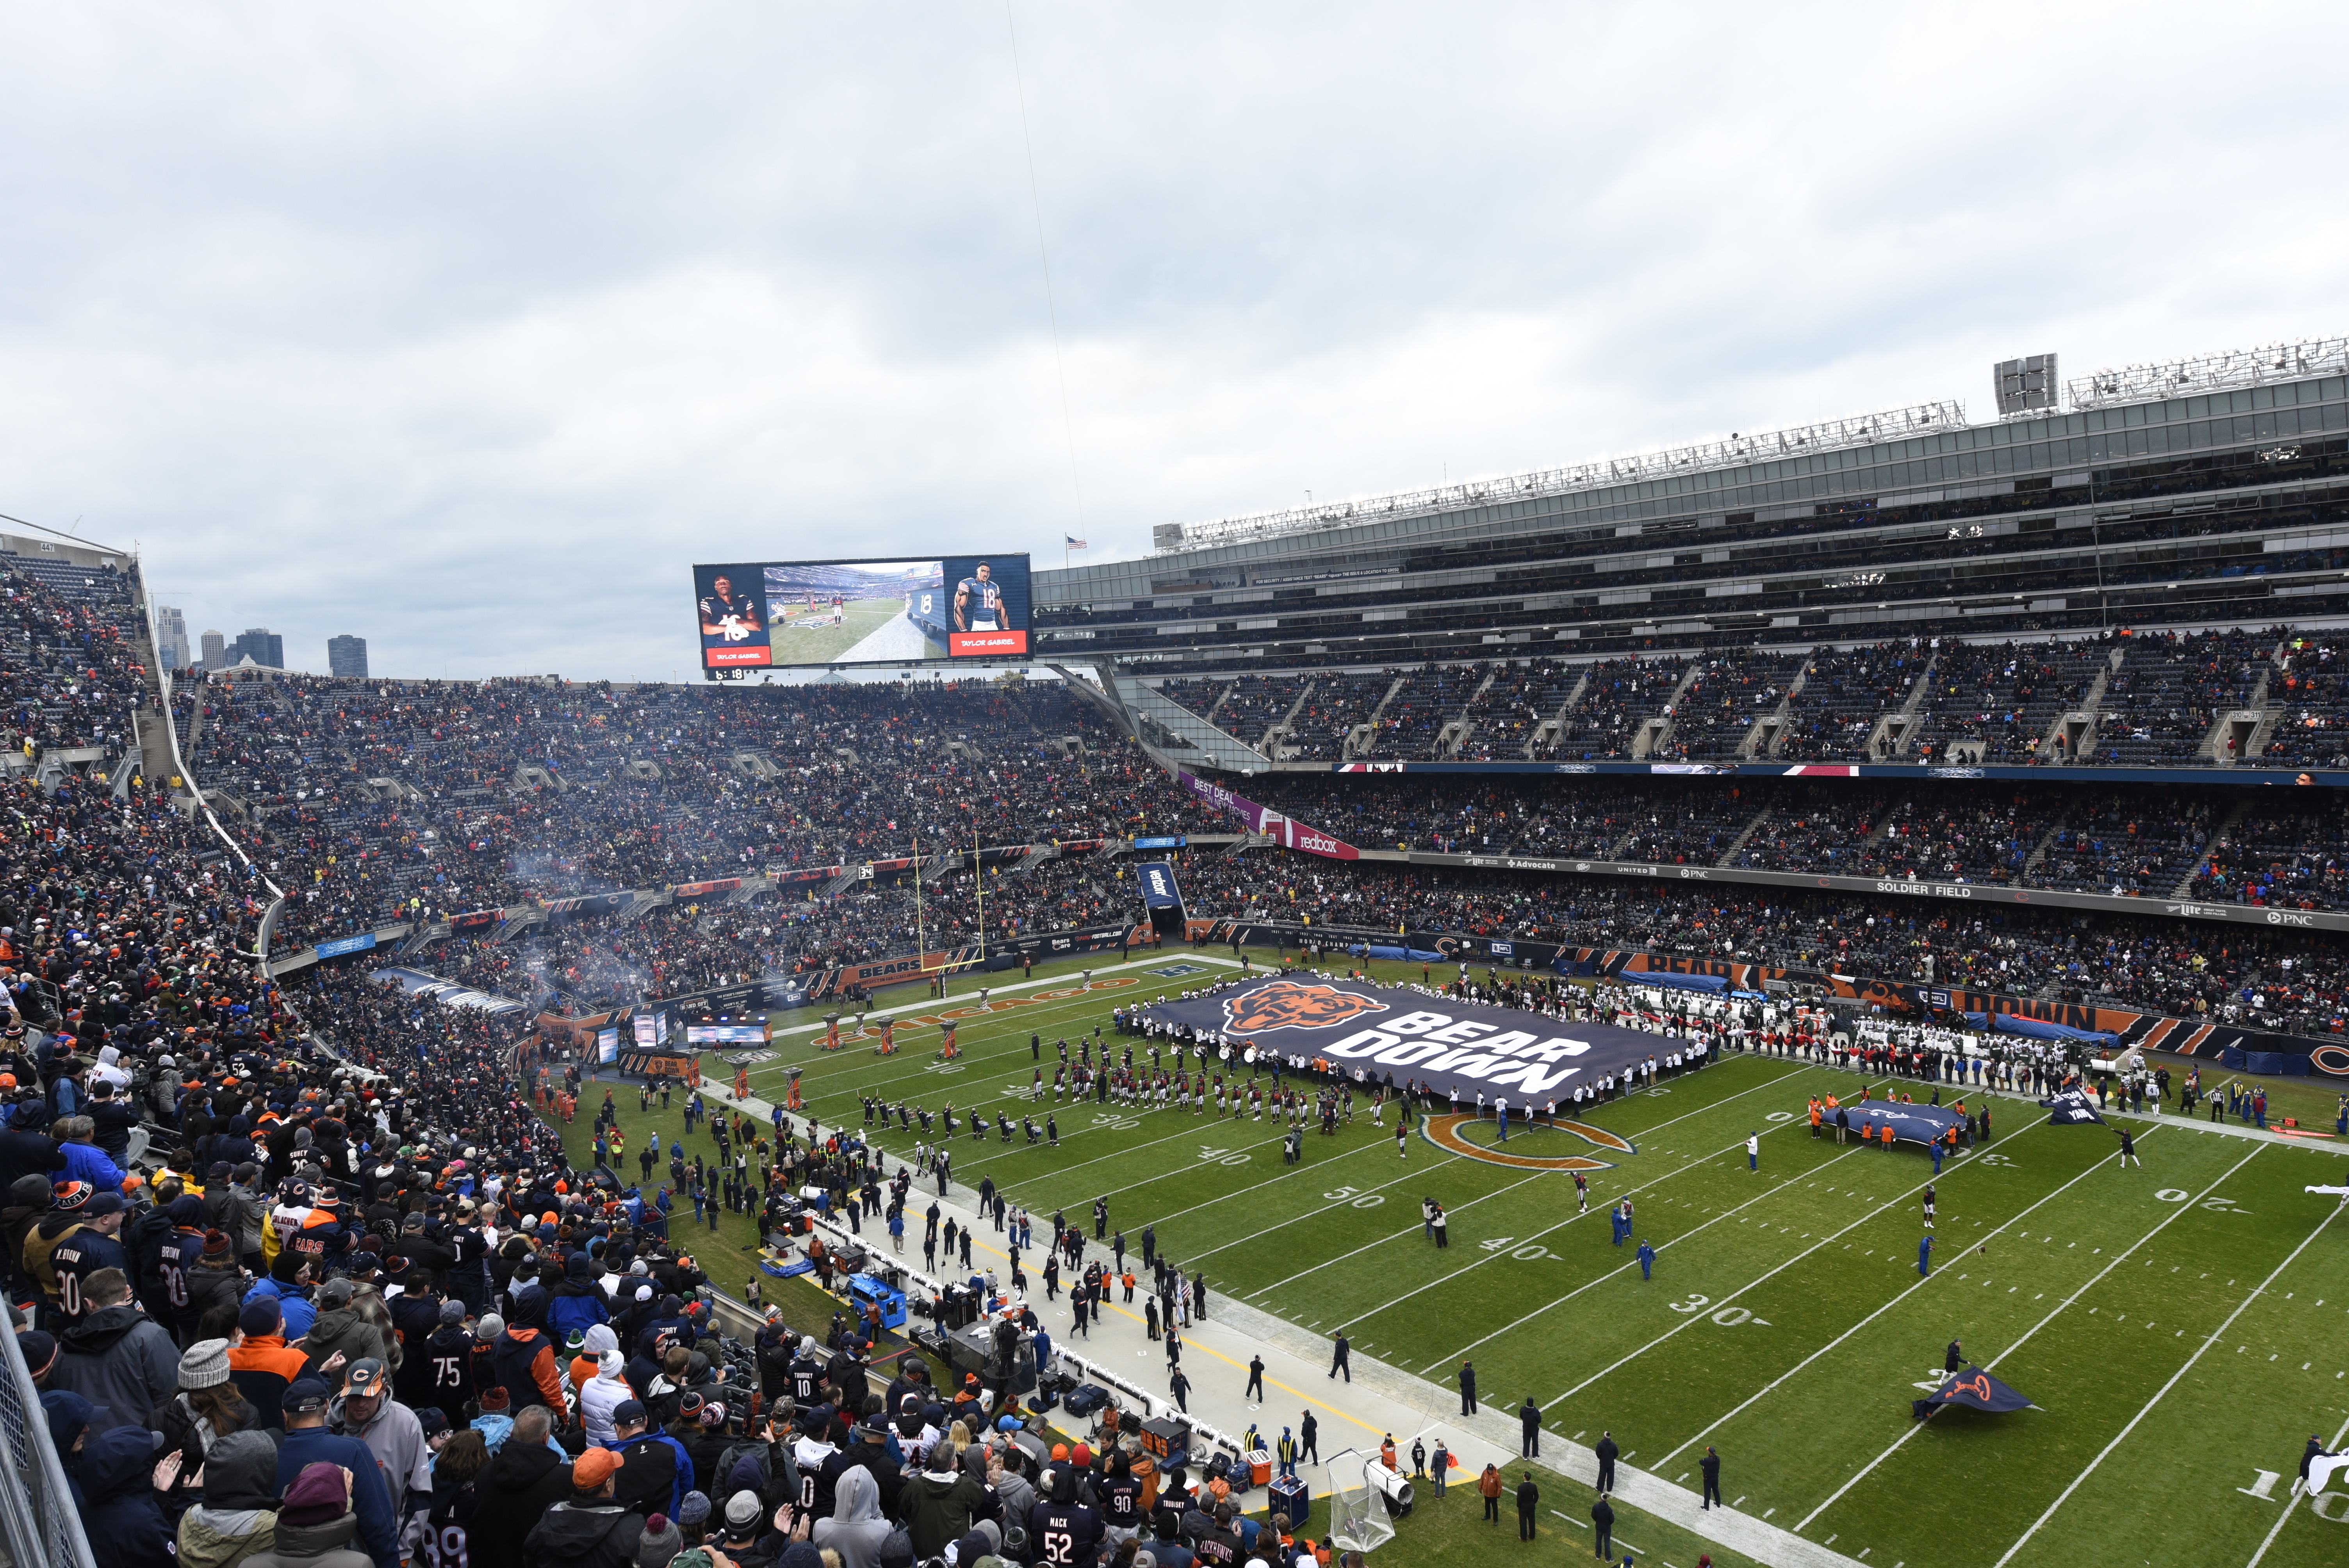 BetRivers and Rivers Casino will have in-stadium signage at Soldier Field under the new sponsorship agreement with the Bears.